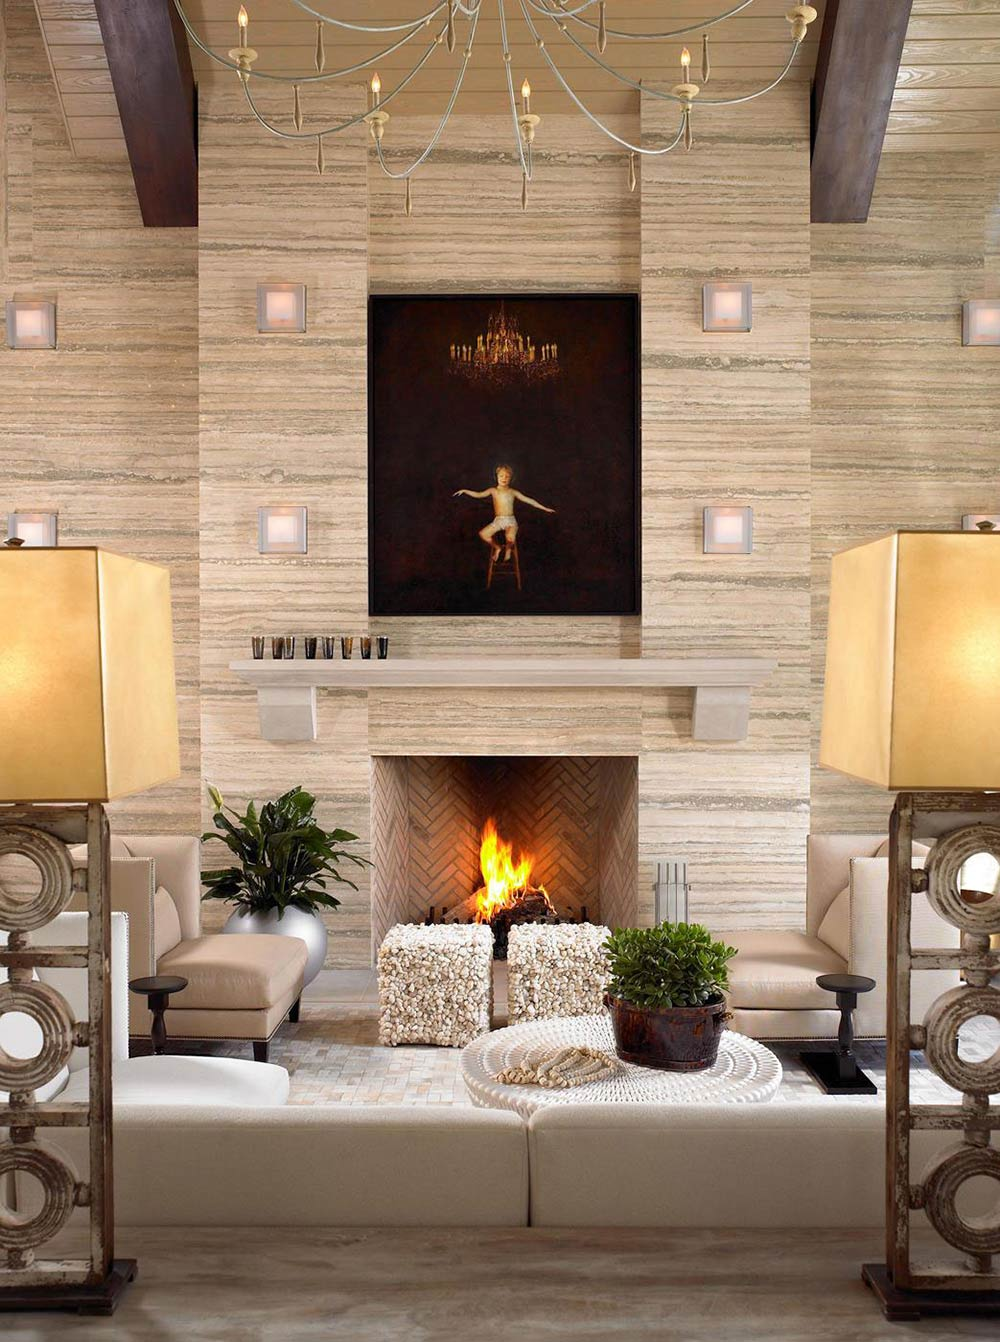 Fireplace, Pool House & Wine Cellar in Nashville, Tennessee by Beckwith Interiors